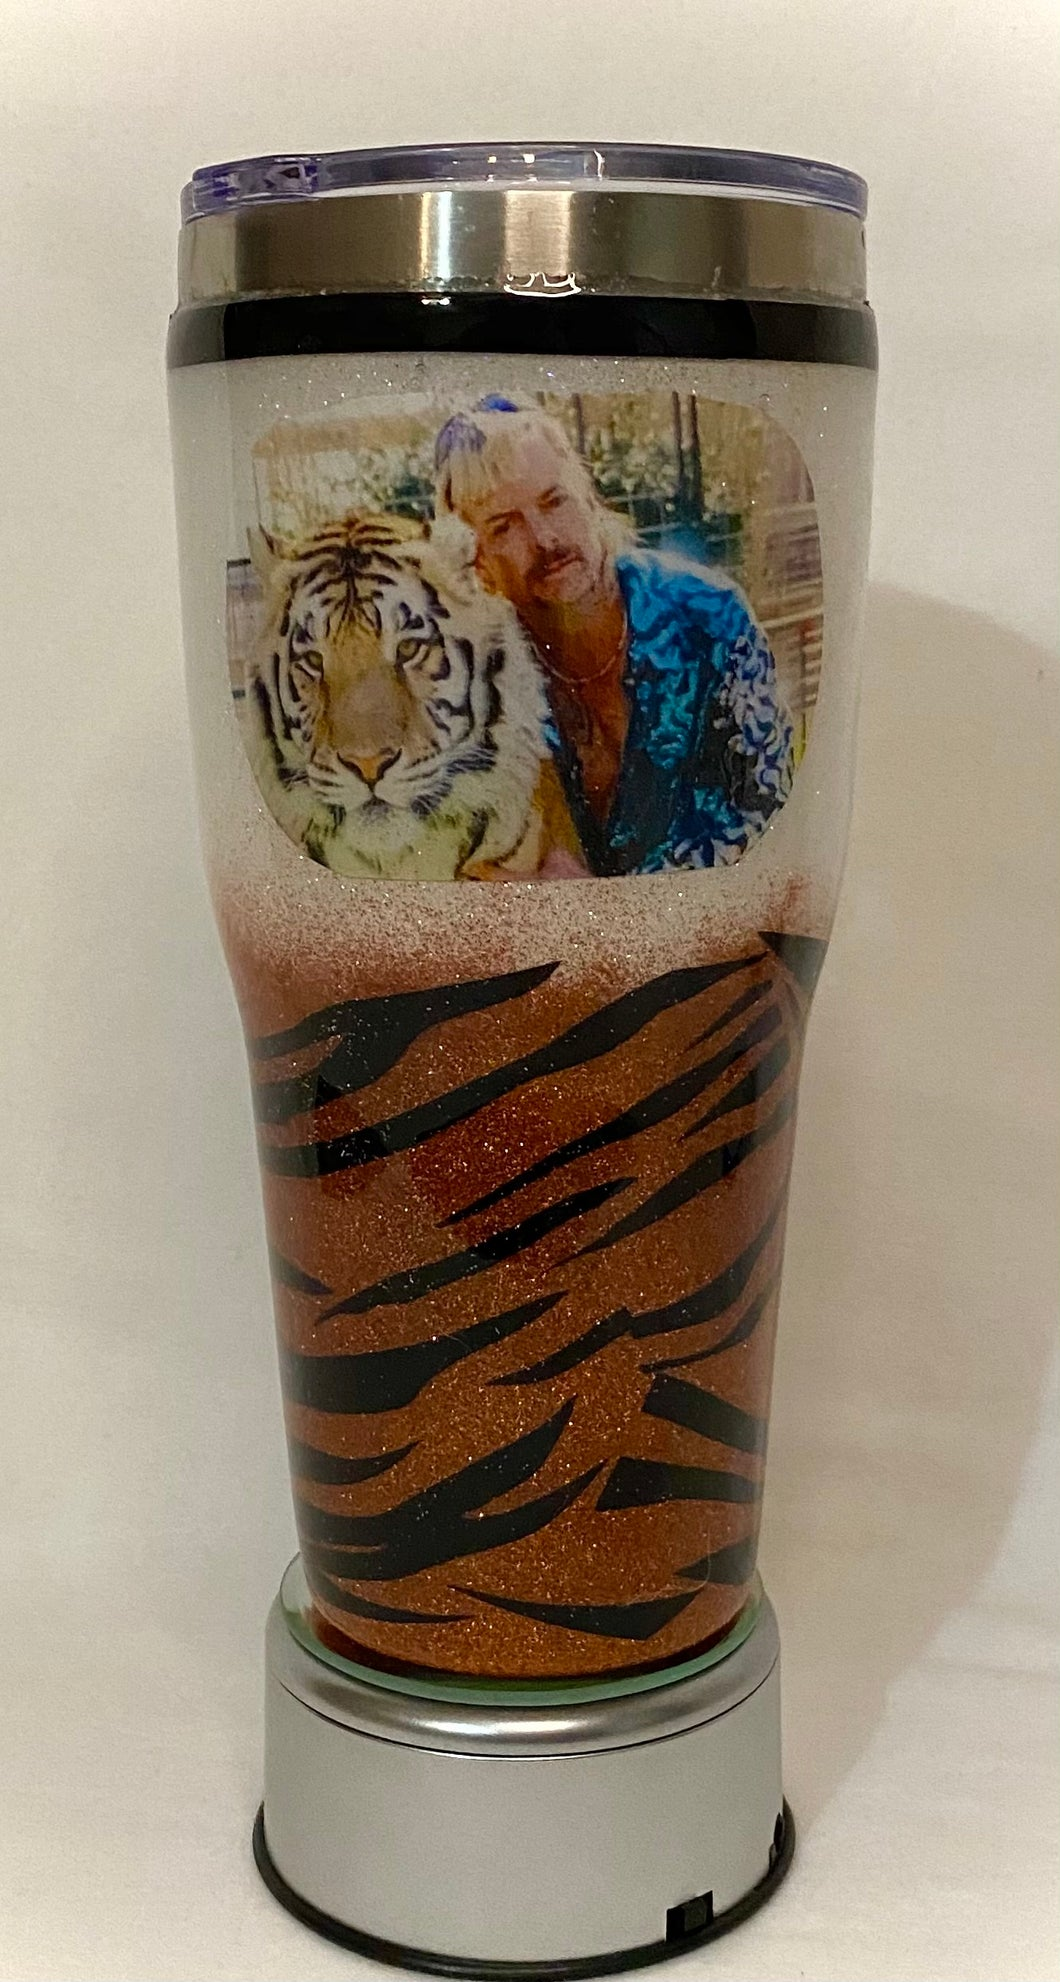 This Tiger King cup is a custom order for a customer. This cup is a 30-ounce stainless steel tumbler that can hold liquids hot/cold for hours. It is decorated in glitter, vinyl, a photo, and FDA food-approved epoxy. It comes with a lid. We can custom design these tumblers any way you like. We can add monograms, names, sayings, etc. We can design by color, size, and your preference for personalization. Call us or email us at 704.526.7407 or email us at perfectselectioncreativegifts@gmail.com and let us desig